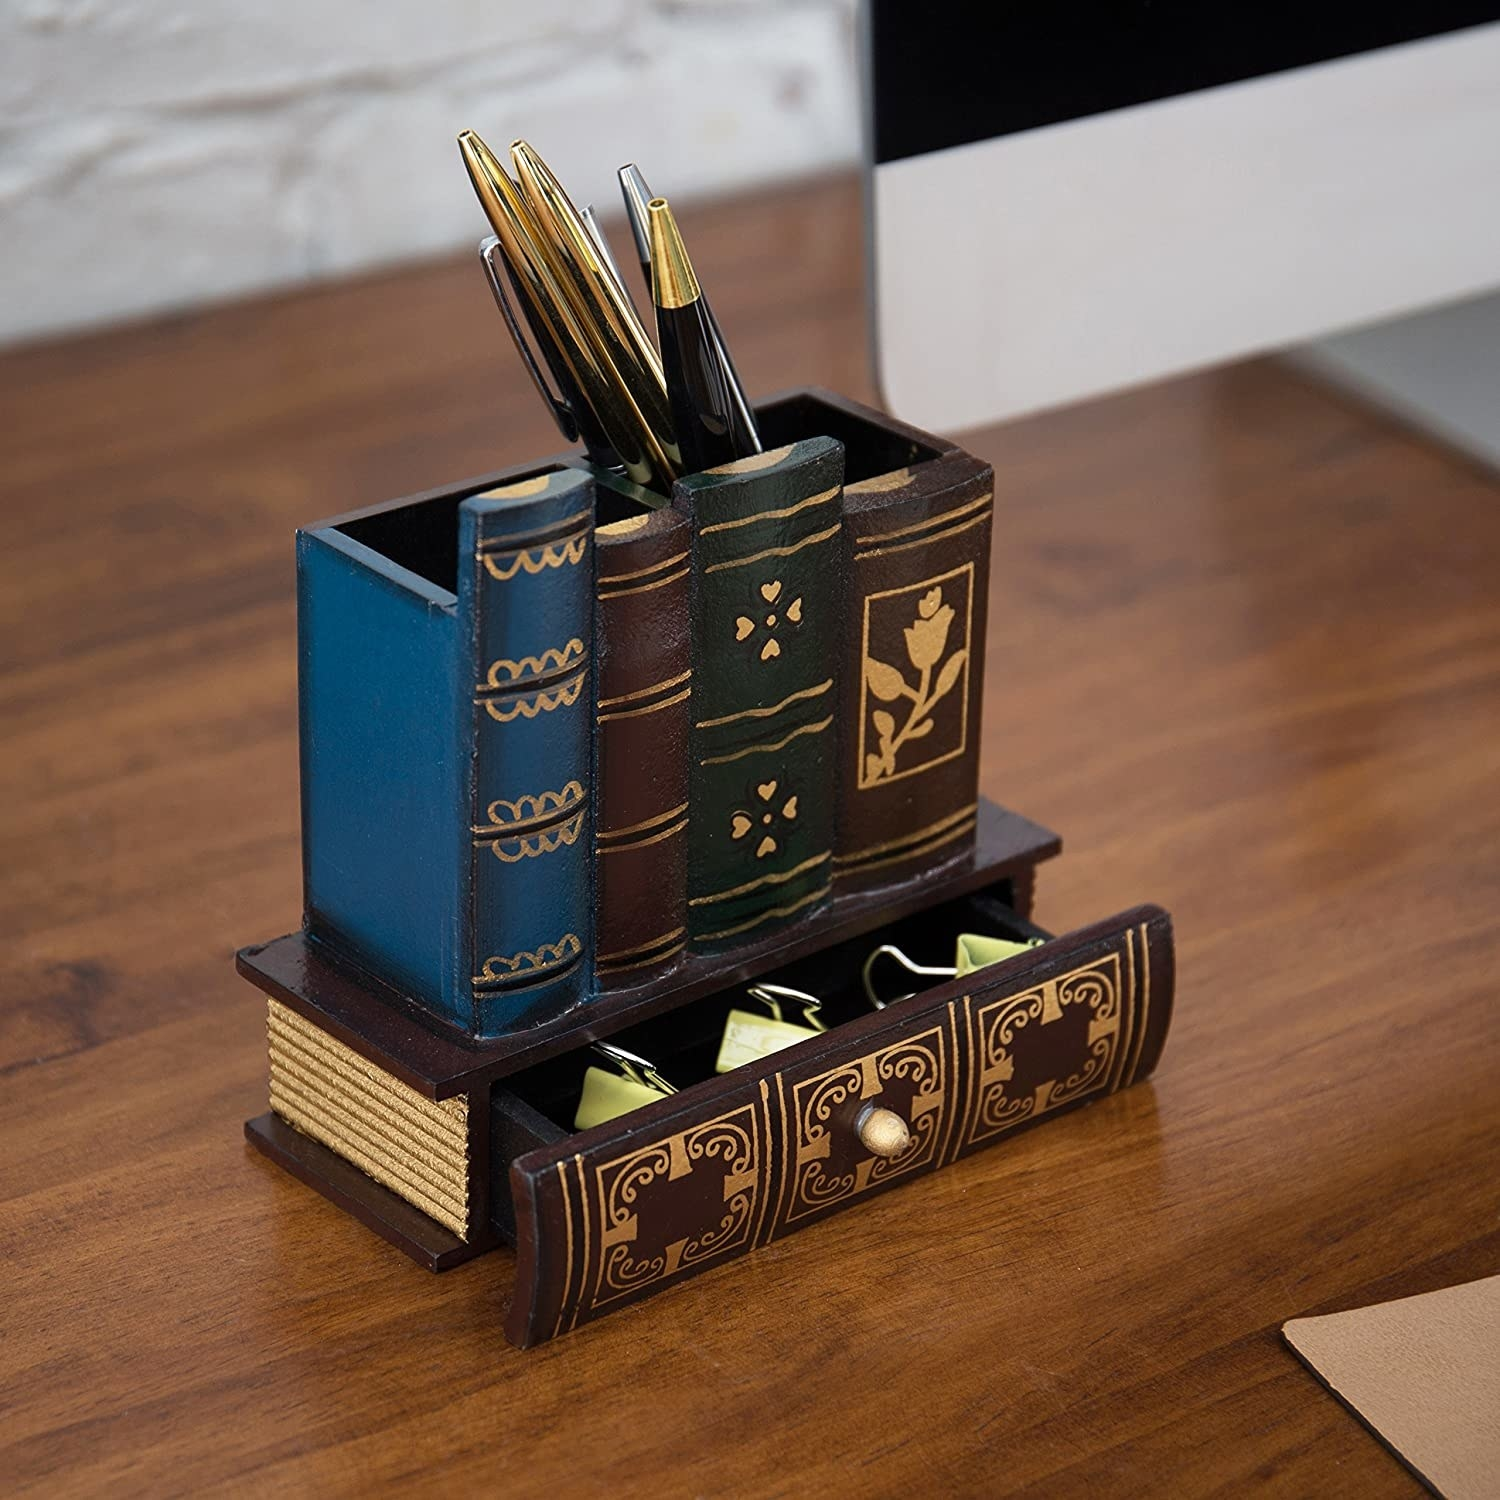 Stacked bookshelf shaped pencil holder with mini book drawer on the bottom